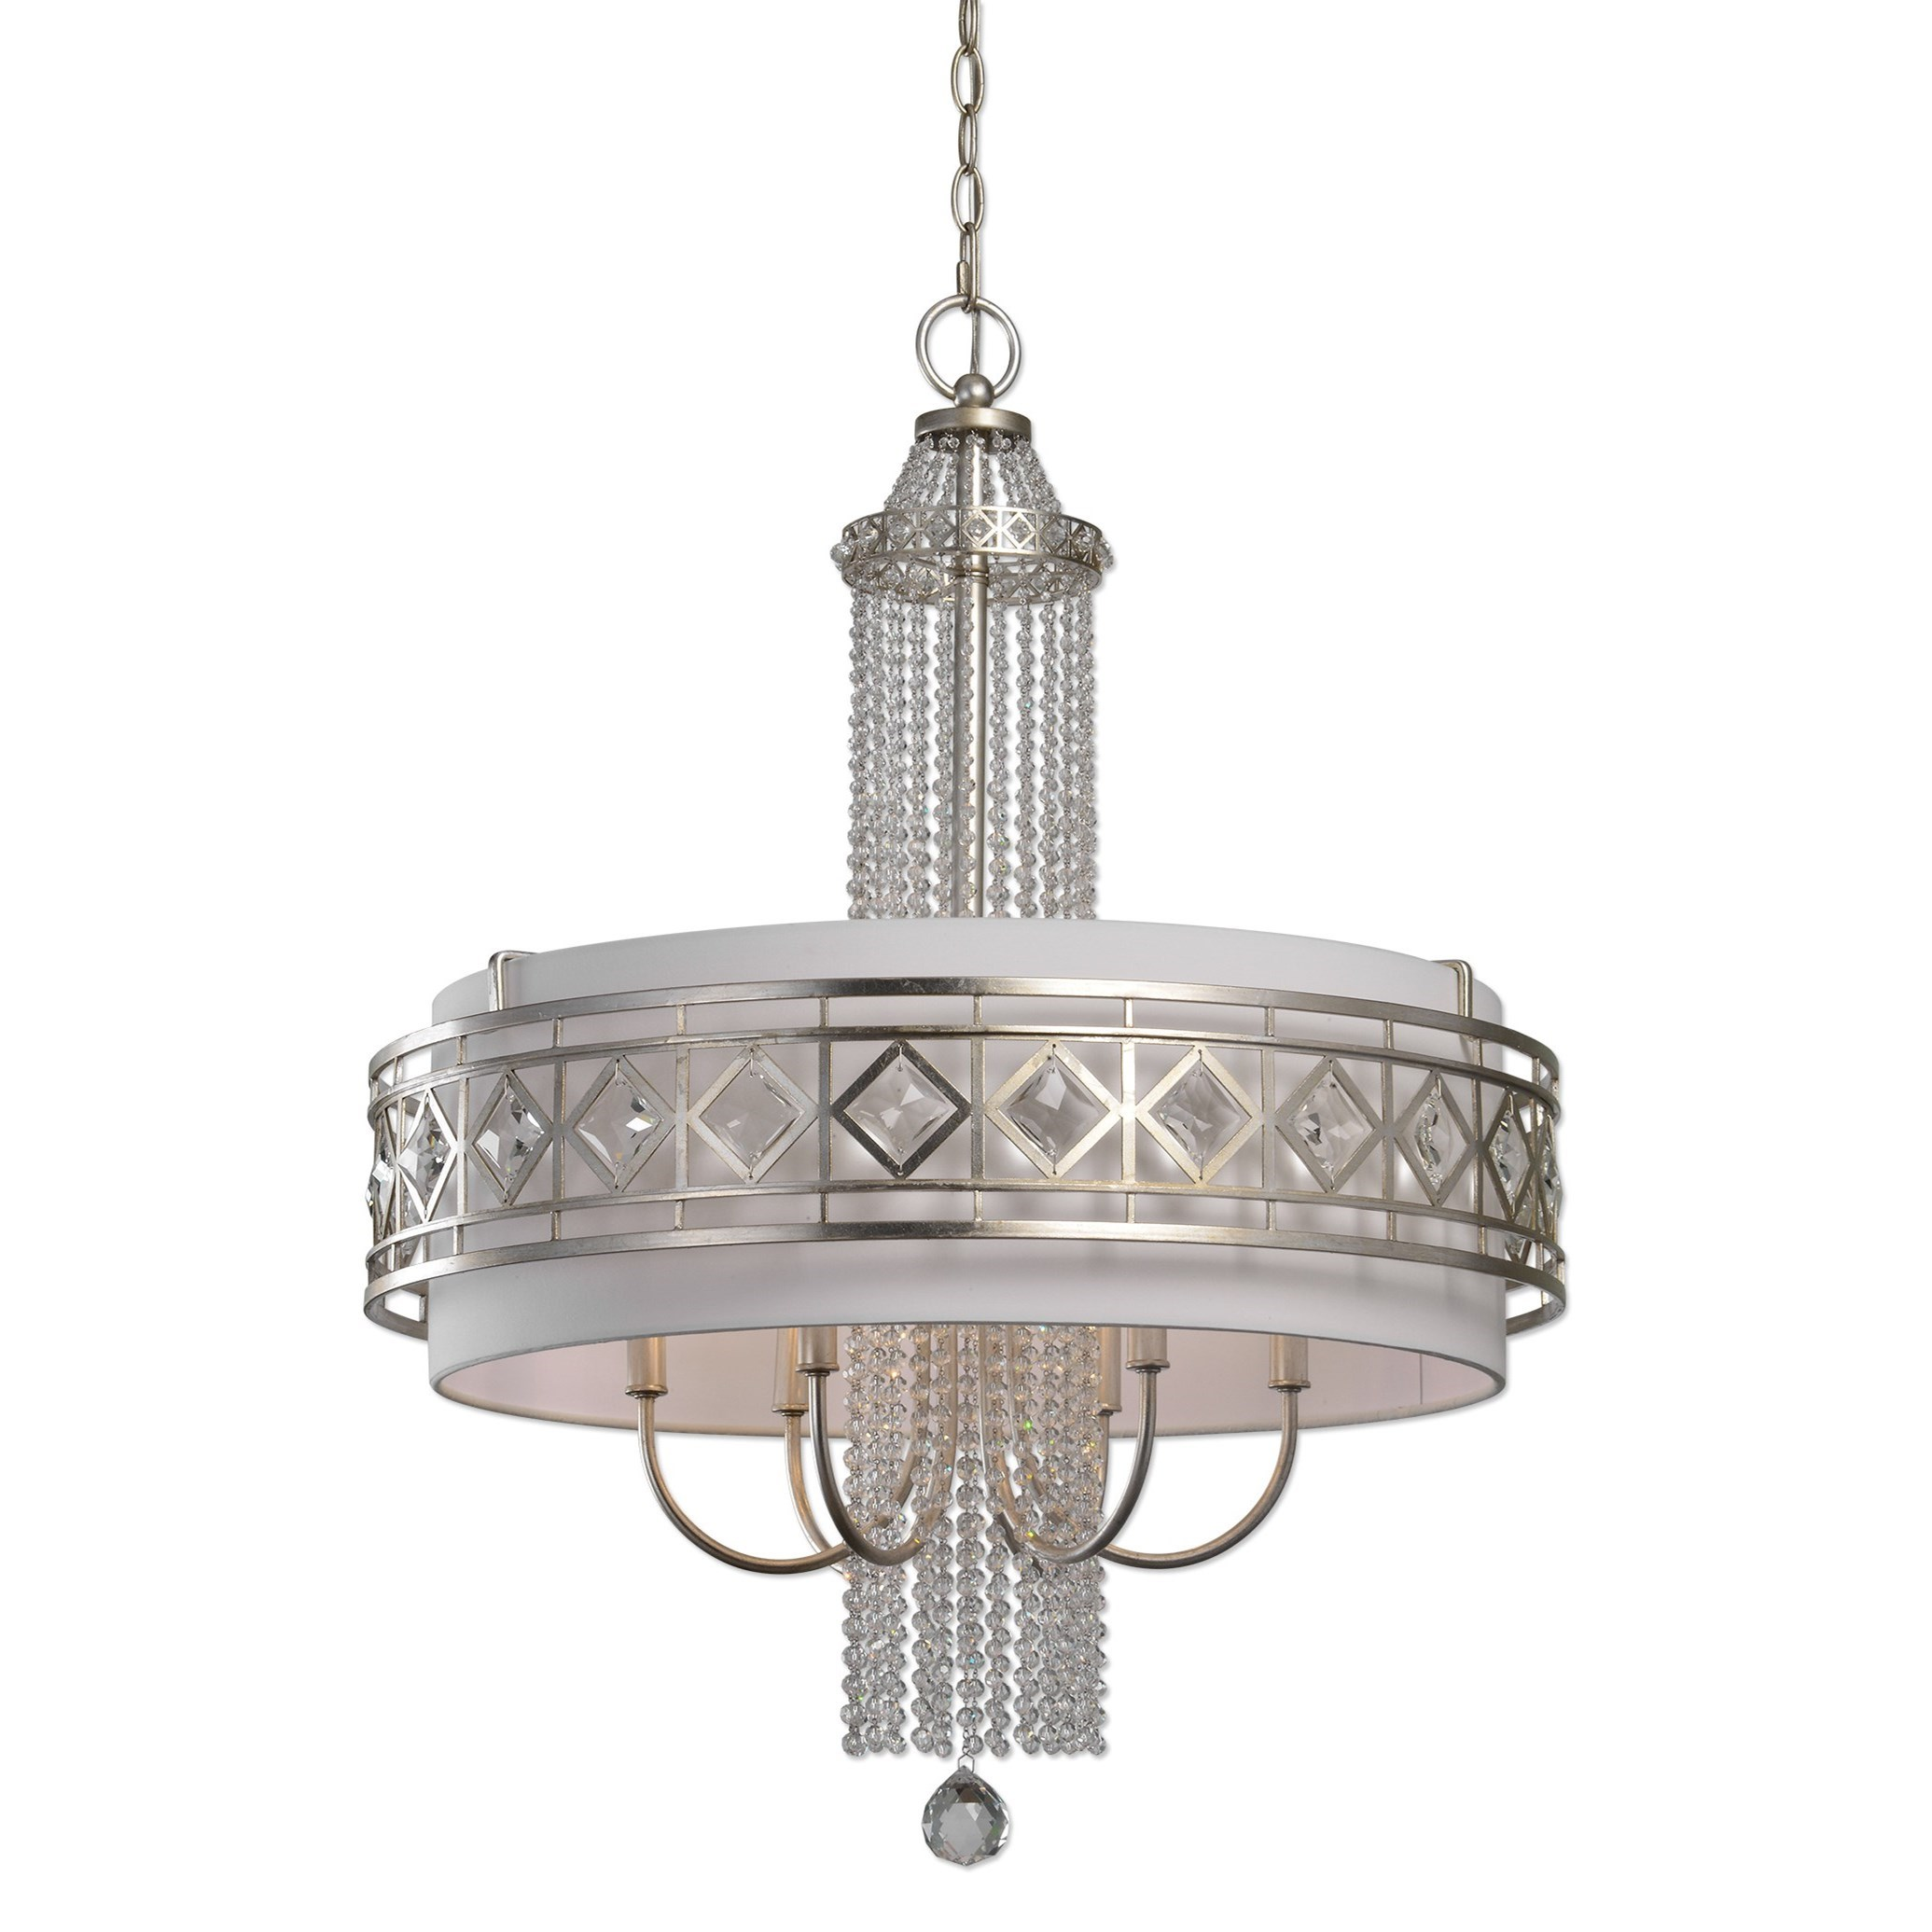 Uttermost Lighting Fixtures Tamela 6 Light Drum Chandelier - Item Number: 21293